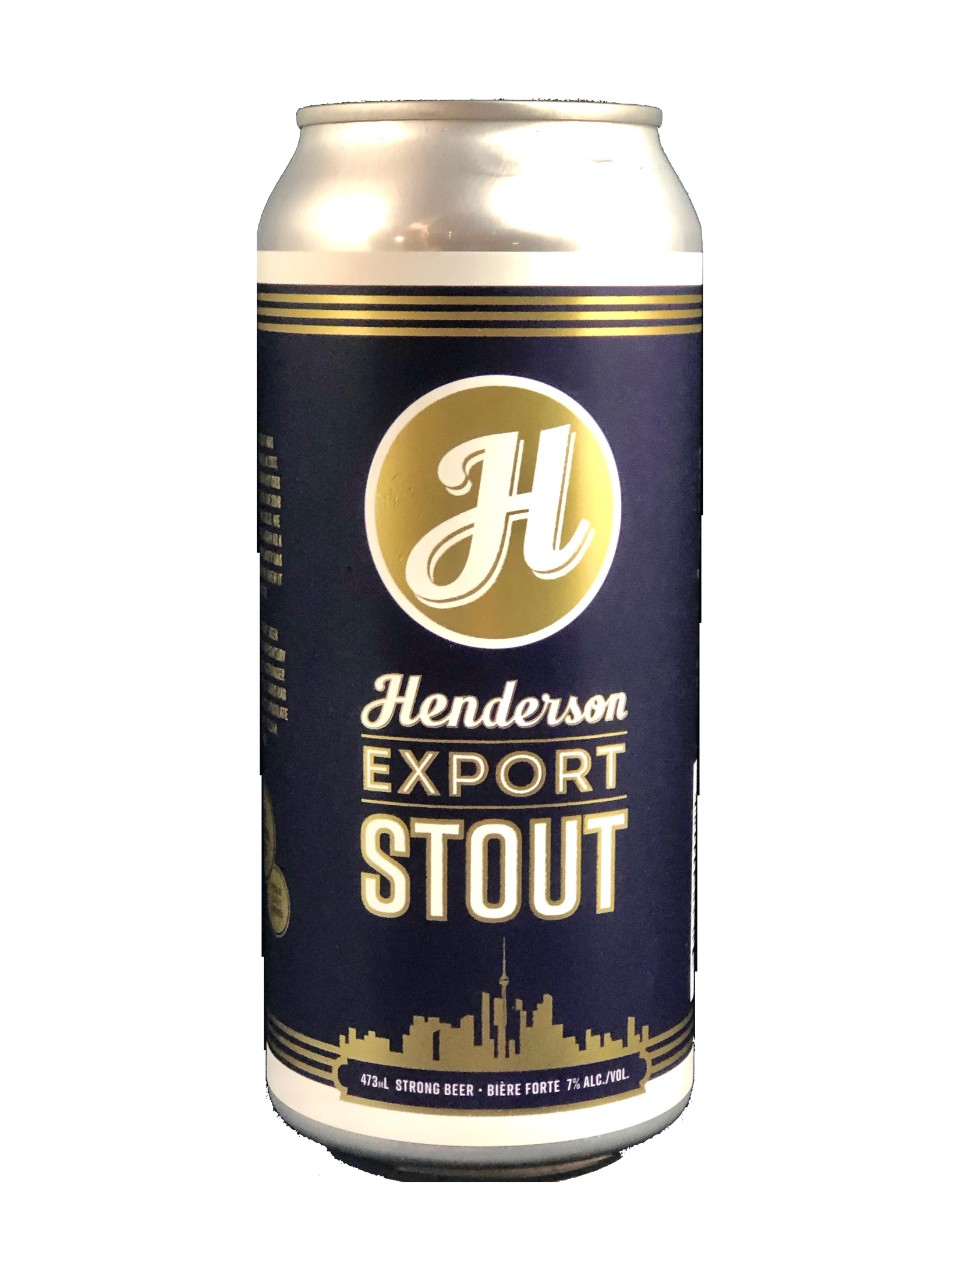 Henderson Export Stout from LCBO